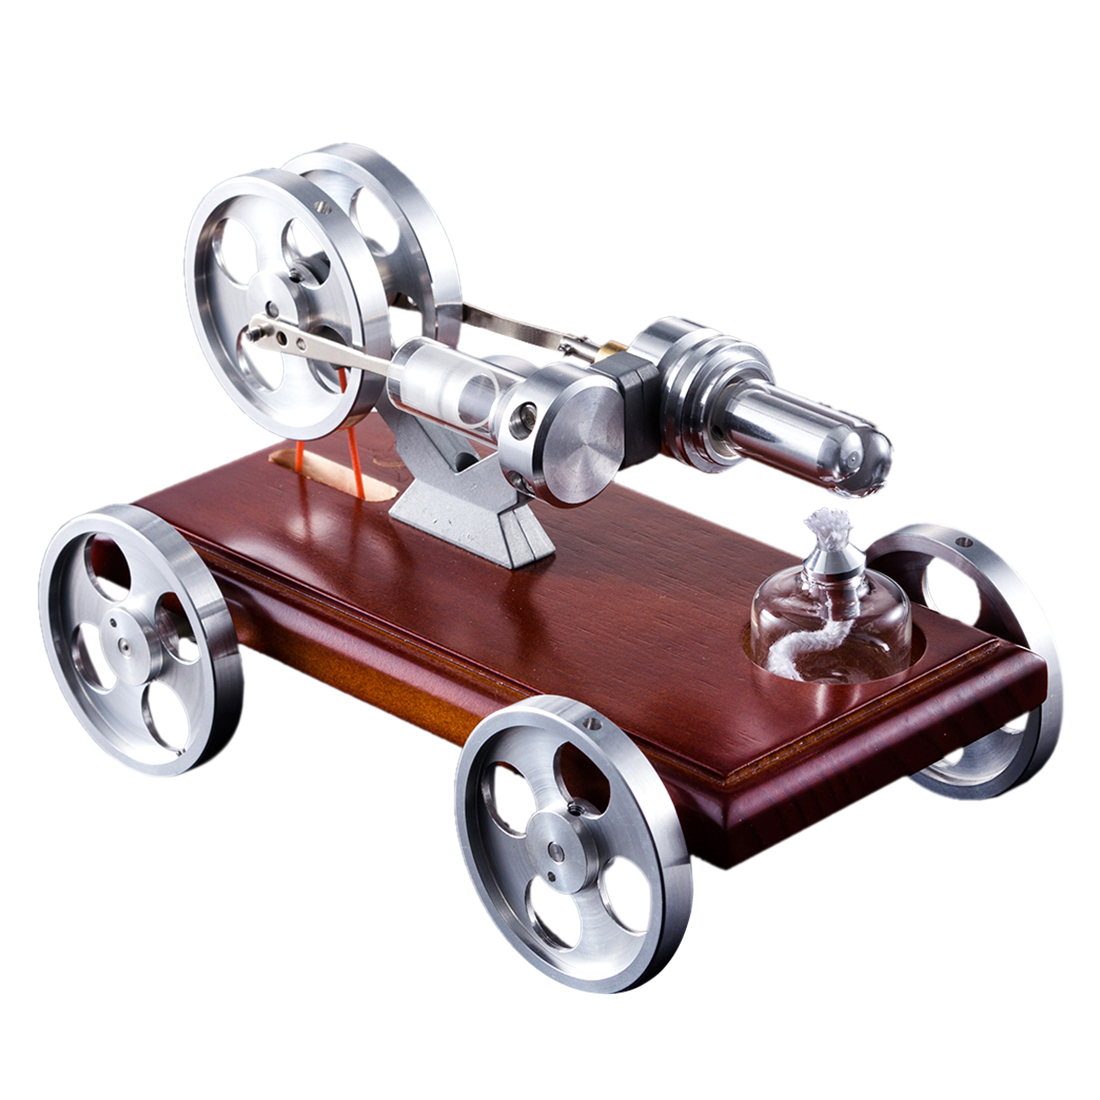 Hot Discovery Toys Solid Wood Baseplate DIY Stirling Engine Car Stem Steam Model Set Educational Toy Gift For Kid Children Adult